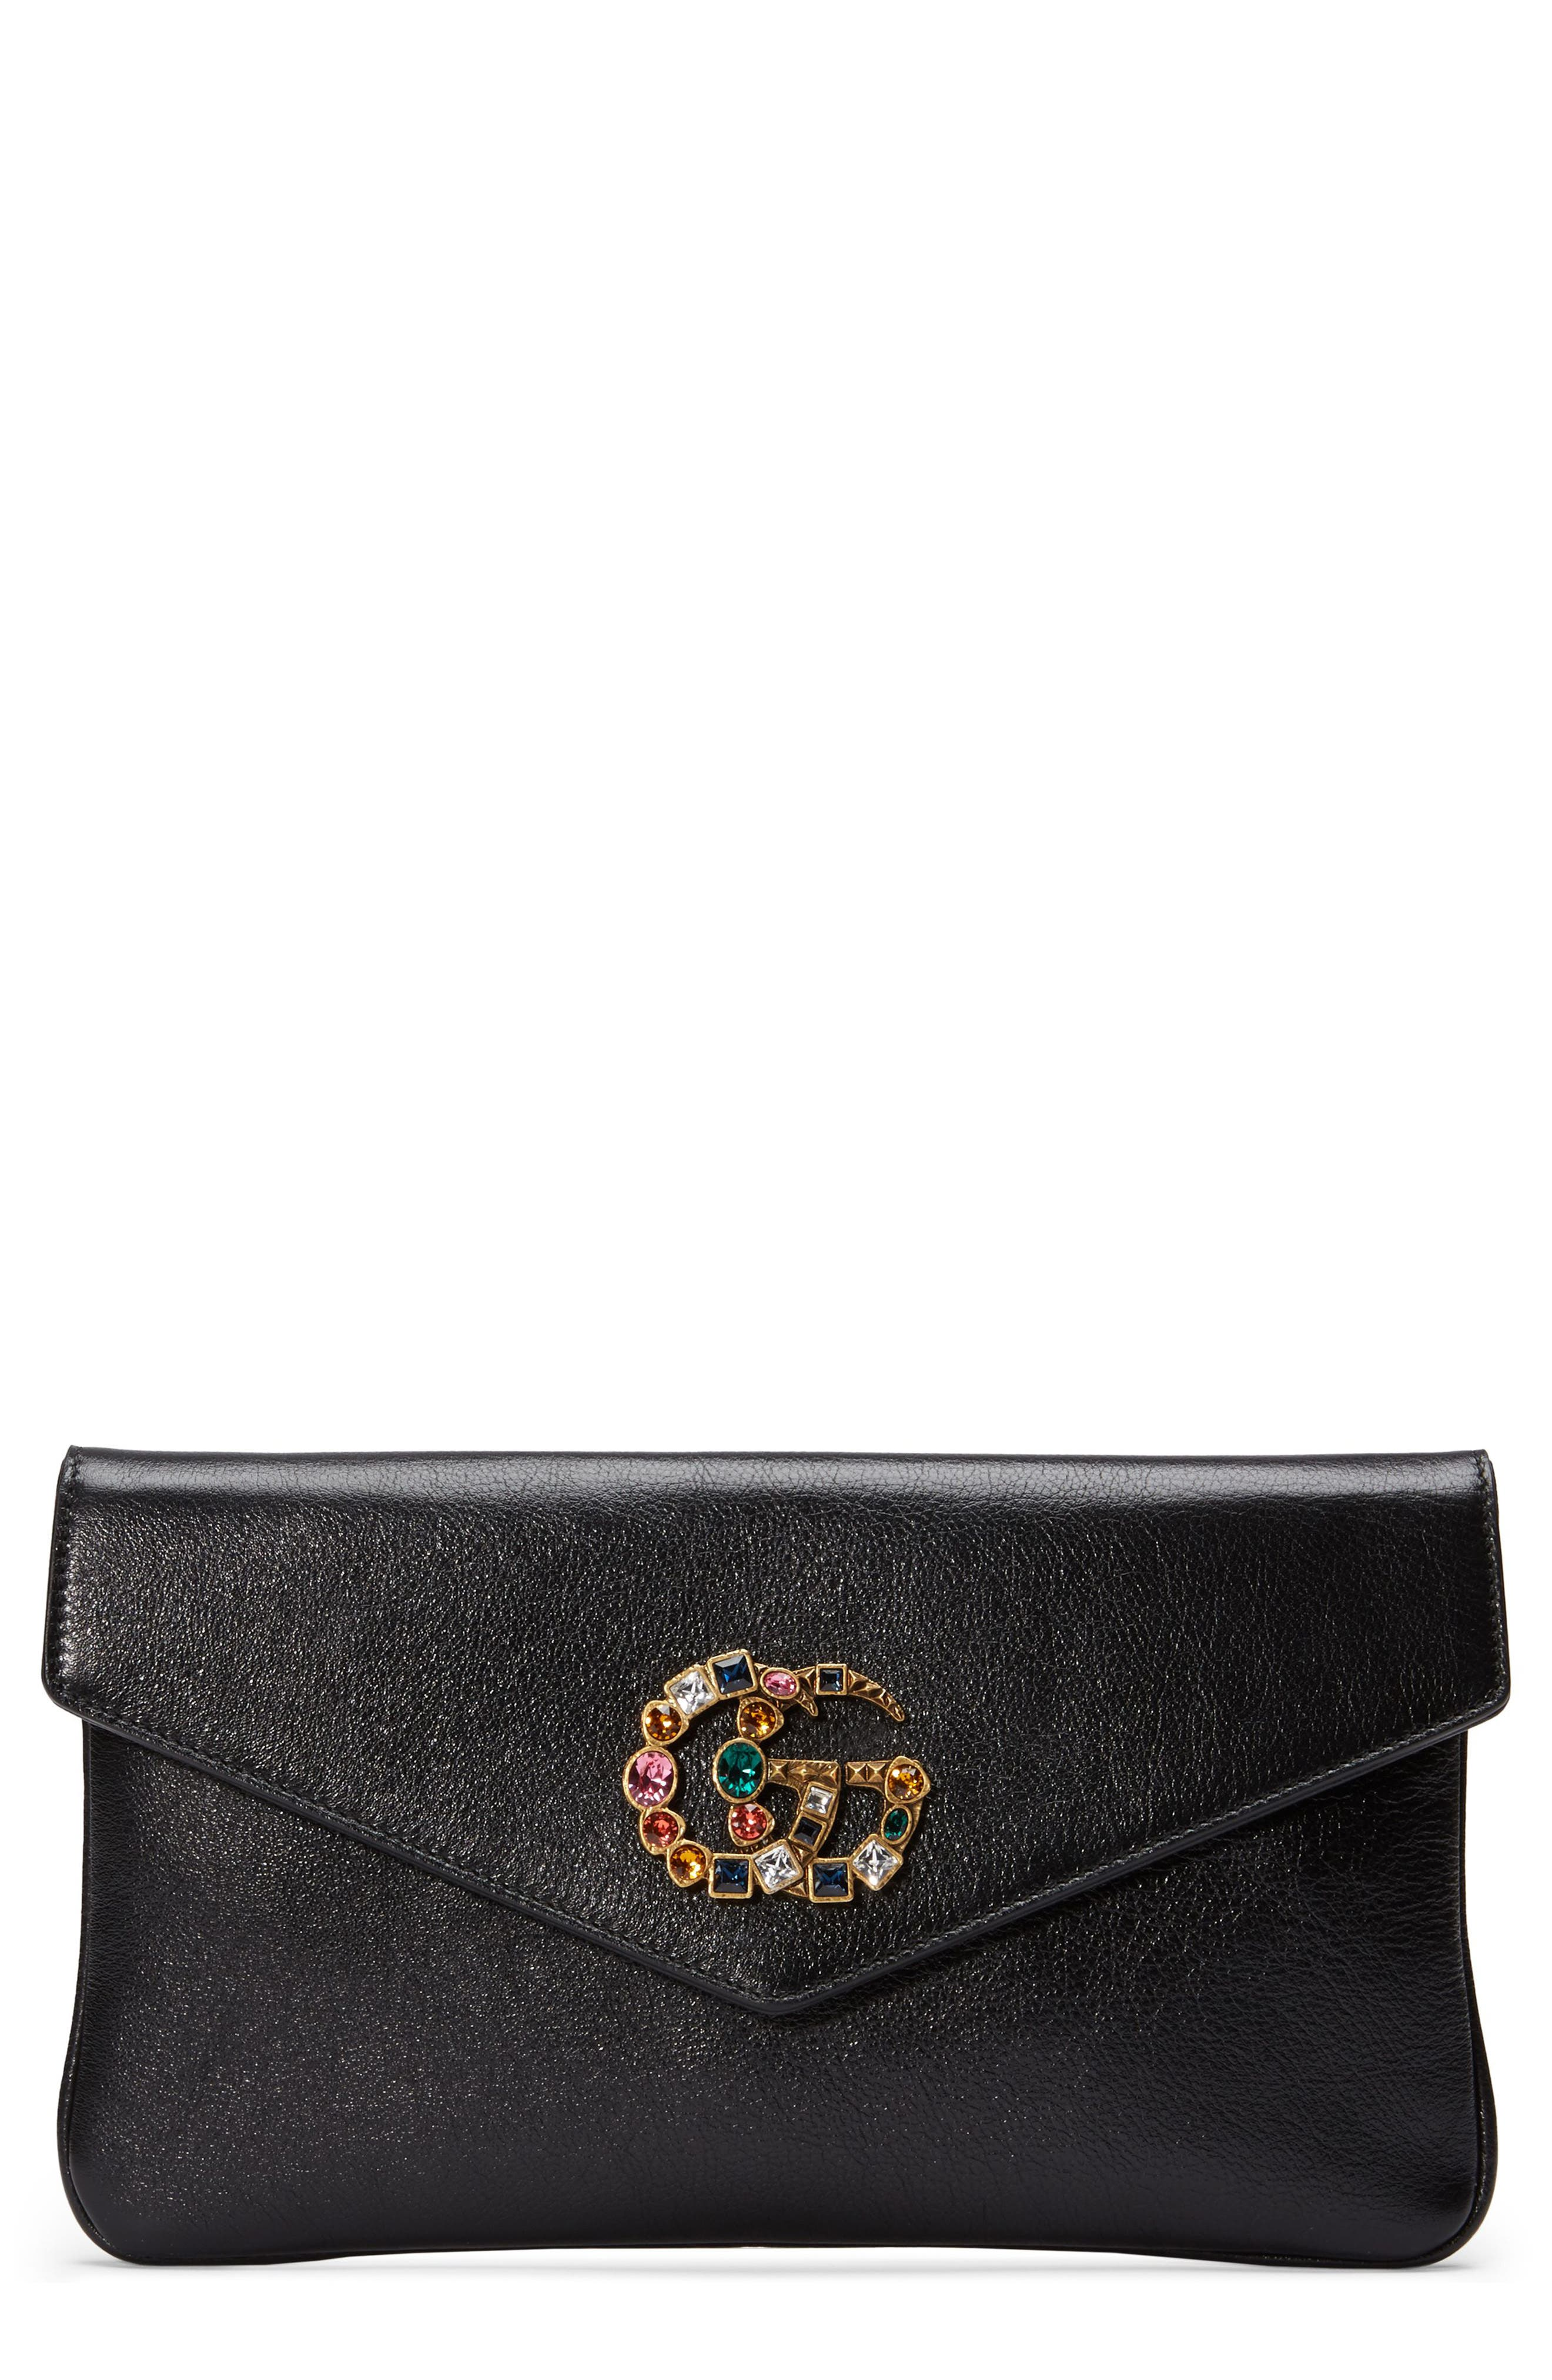 Broadway Crystal GG Leather Envelope Clutch,                         Main,                         color, 001